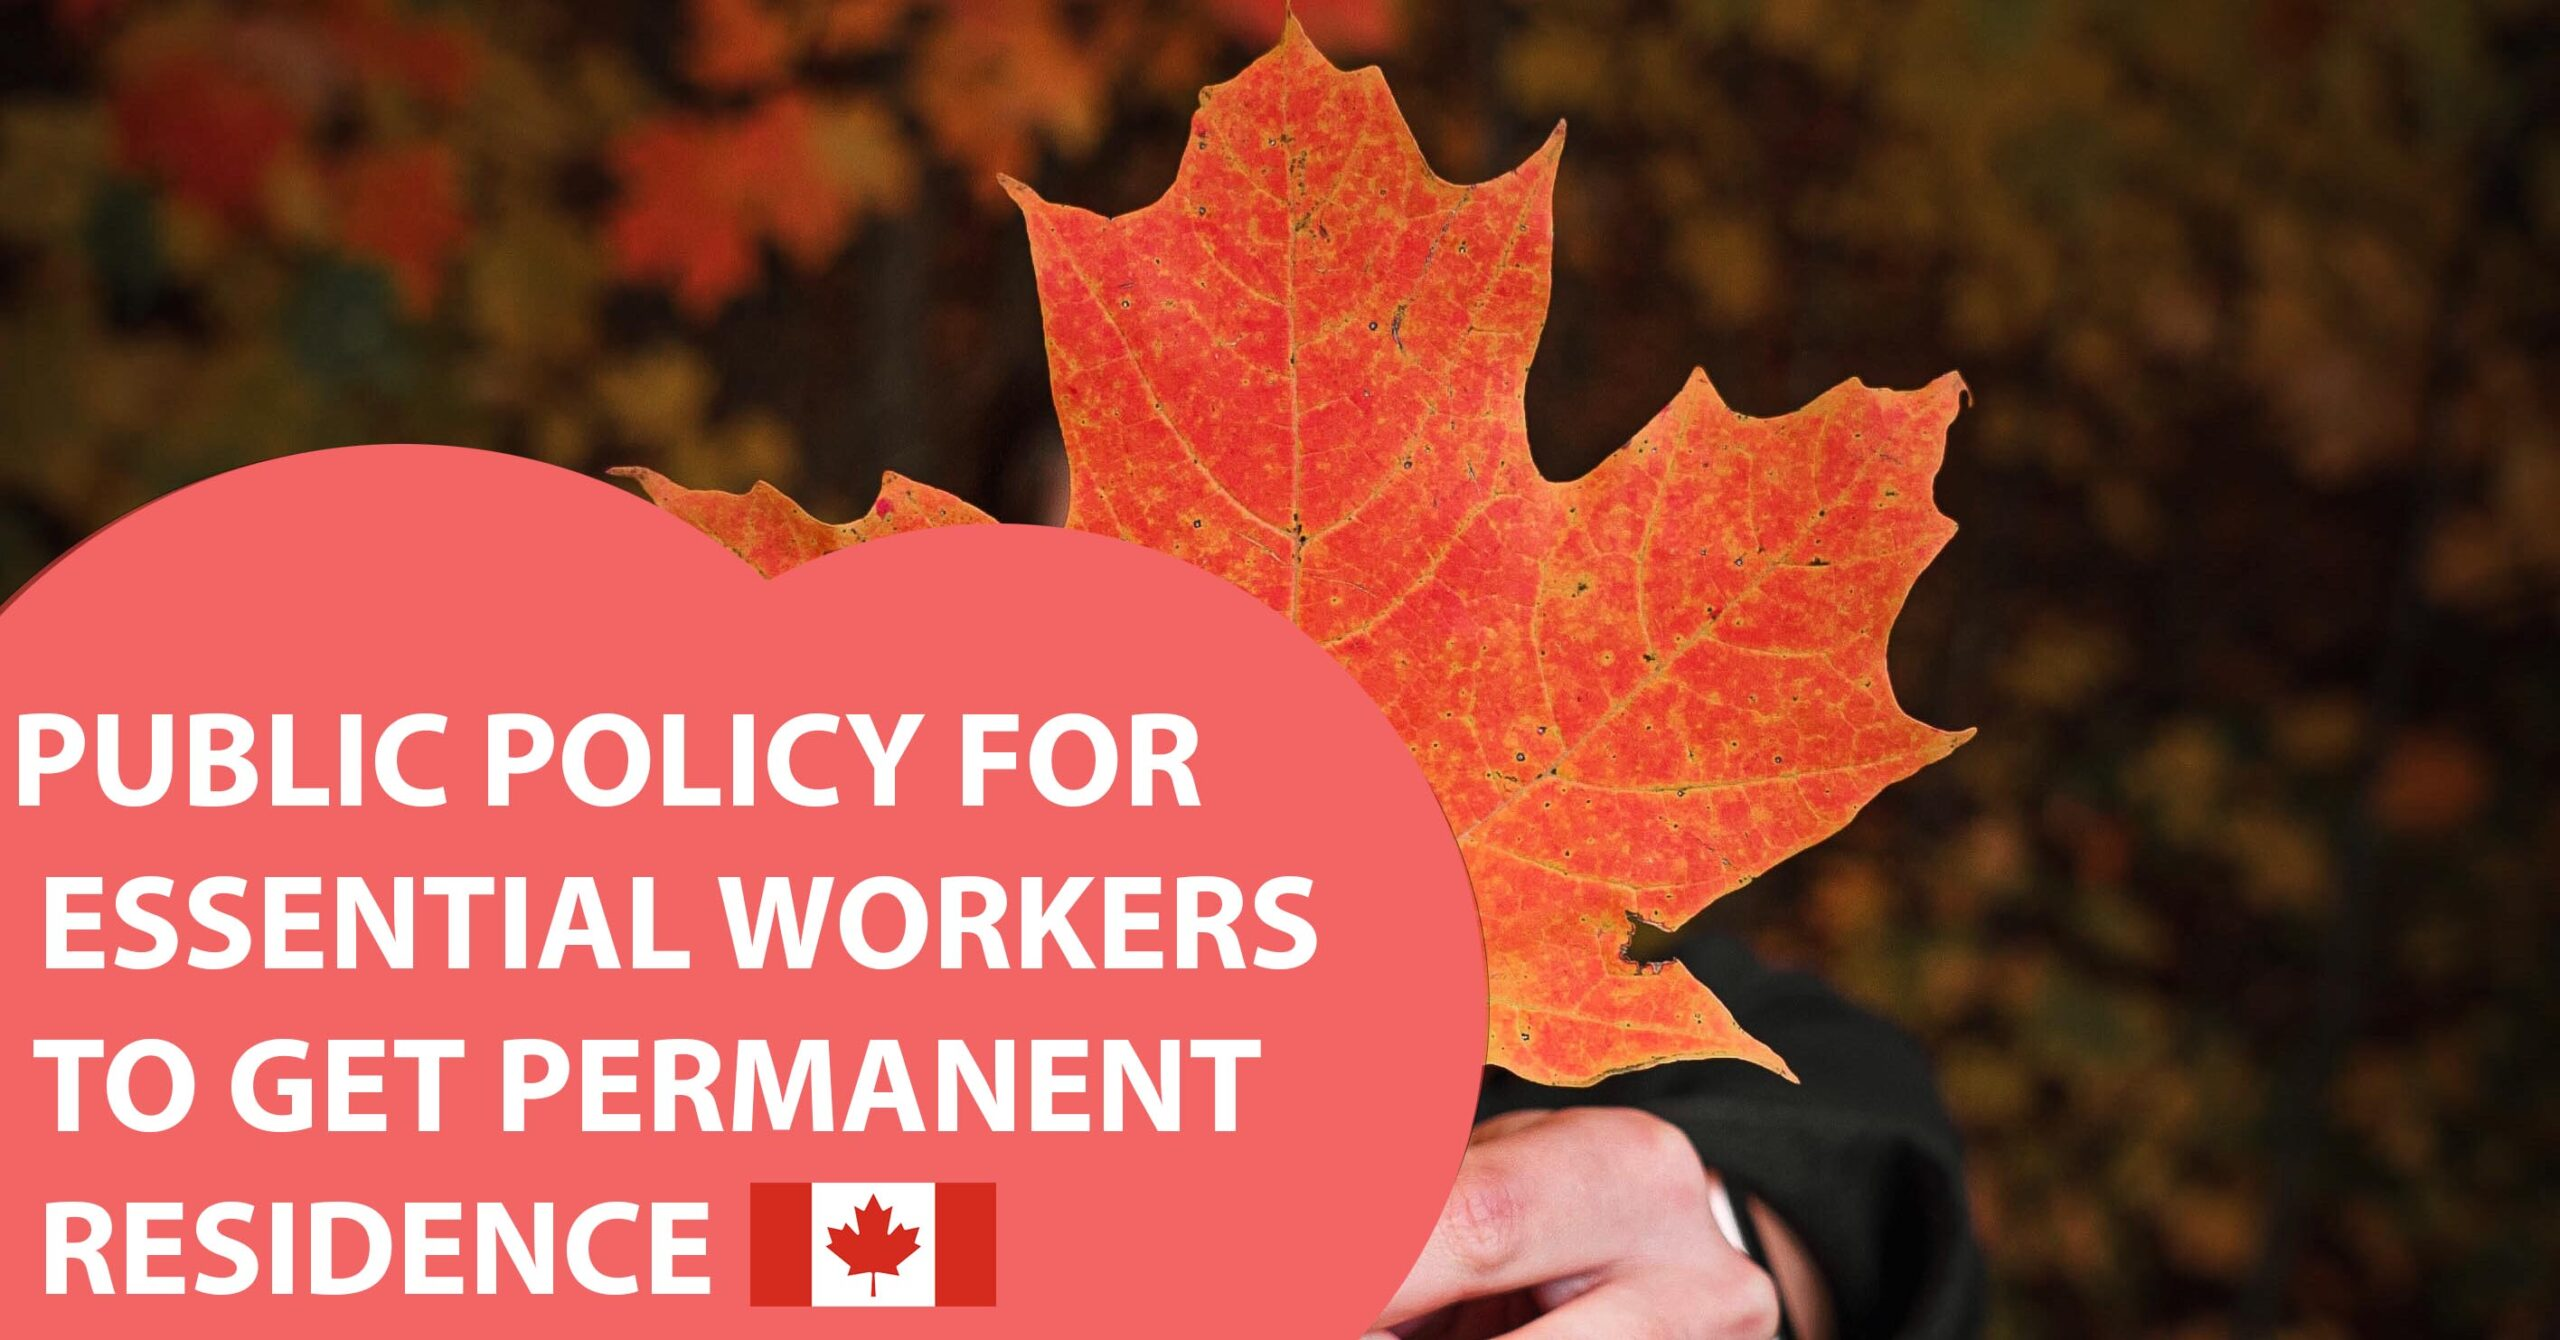 PUBLIC POLICY FOR ESSENTIAL WORKERS TO GET PERMANENT RESIDENCE (OPENING ON MAY 6TH )